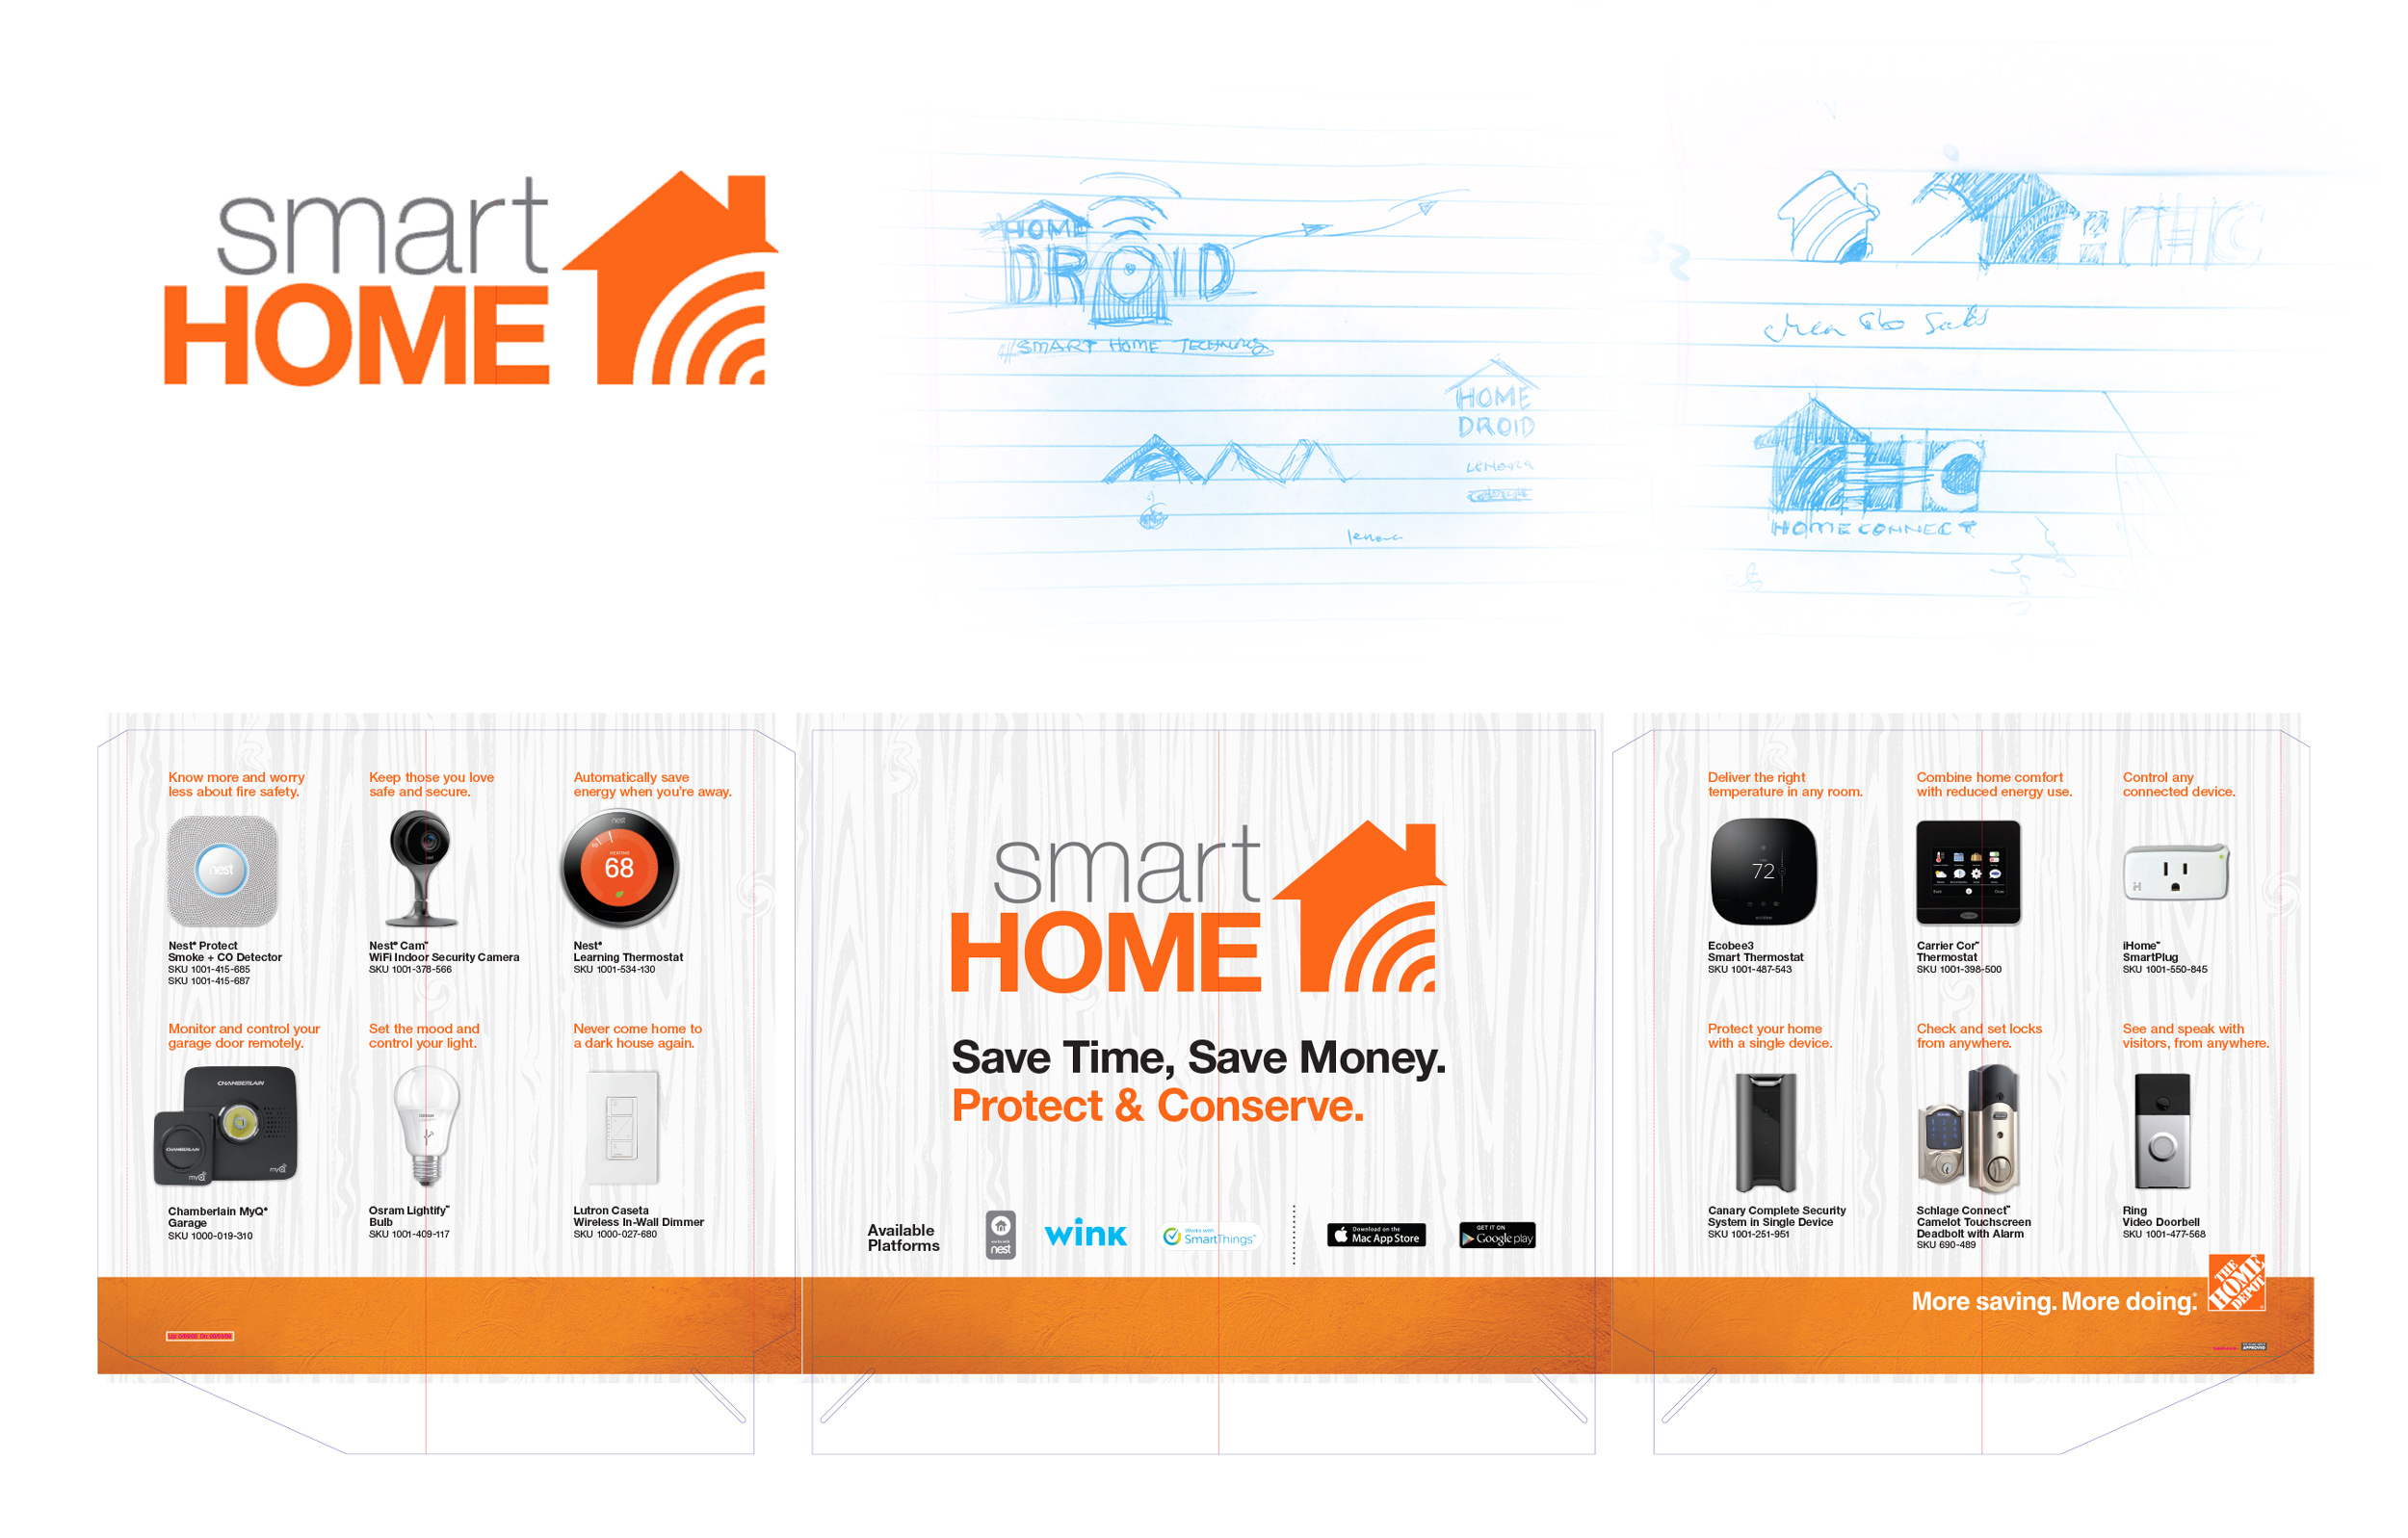 Home Depot Smart Home Logo AM Creative Group - The home depot logo